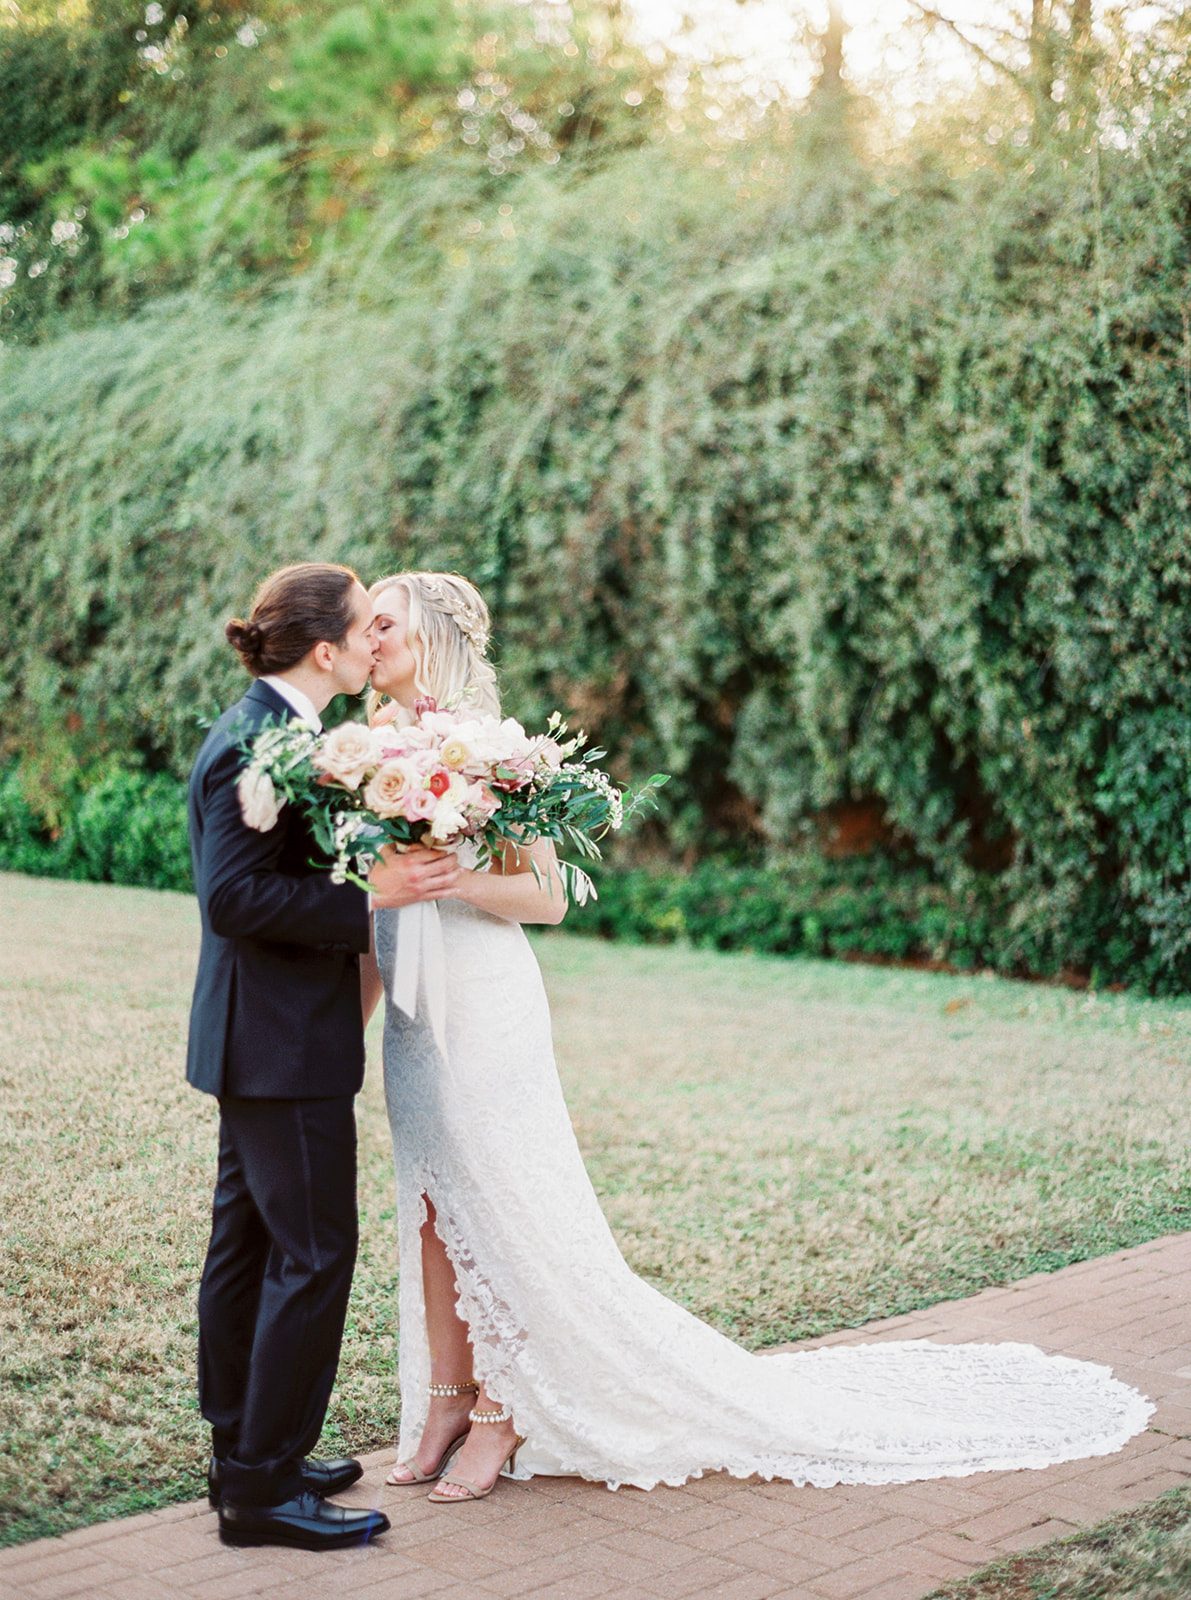 The Lockharts DFW Wedding Photography featured on Alexa Kay Events